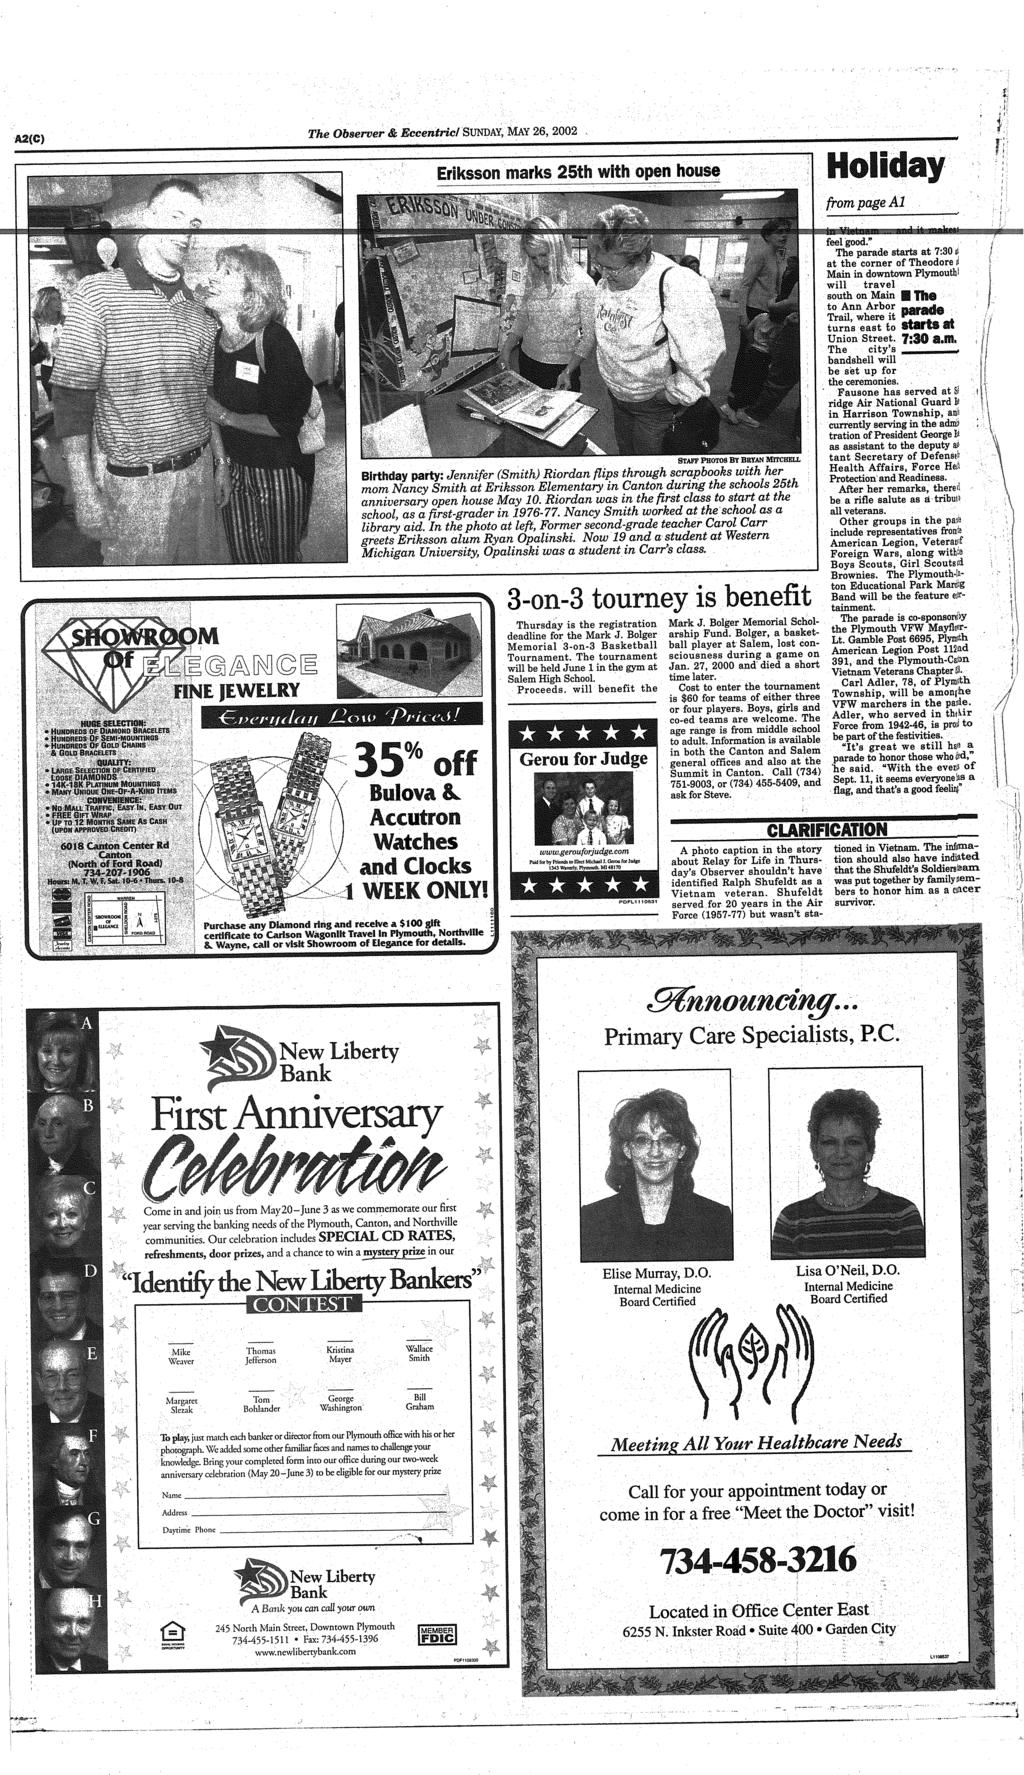 Canton Michigan Pdf Tcash Vaganza 35 Miranda Hair Conditioner The Observer Eccentric Sunday May Eriksson Marks 25th With Open House From Page